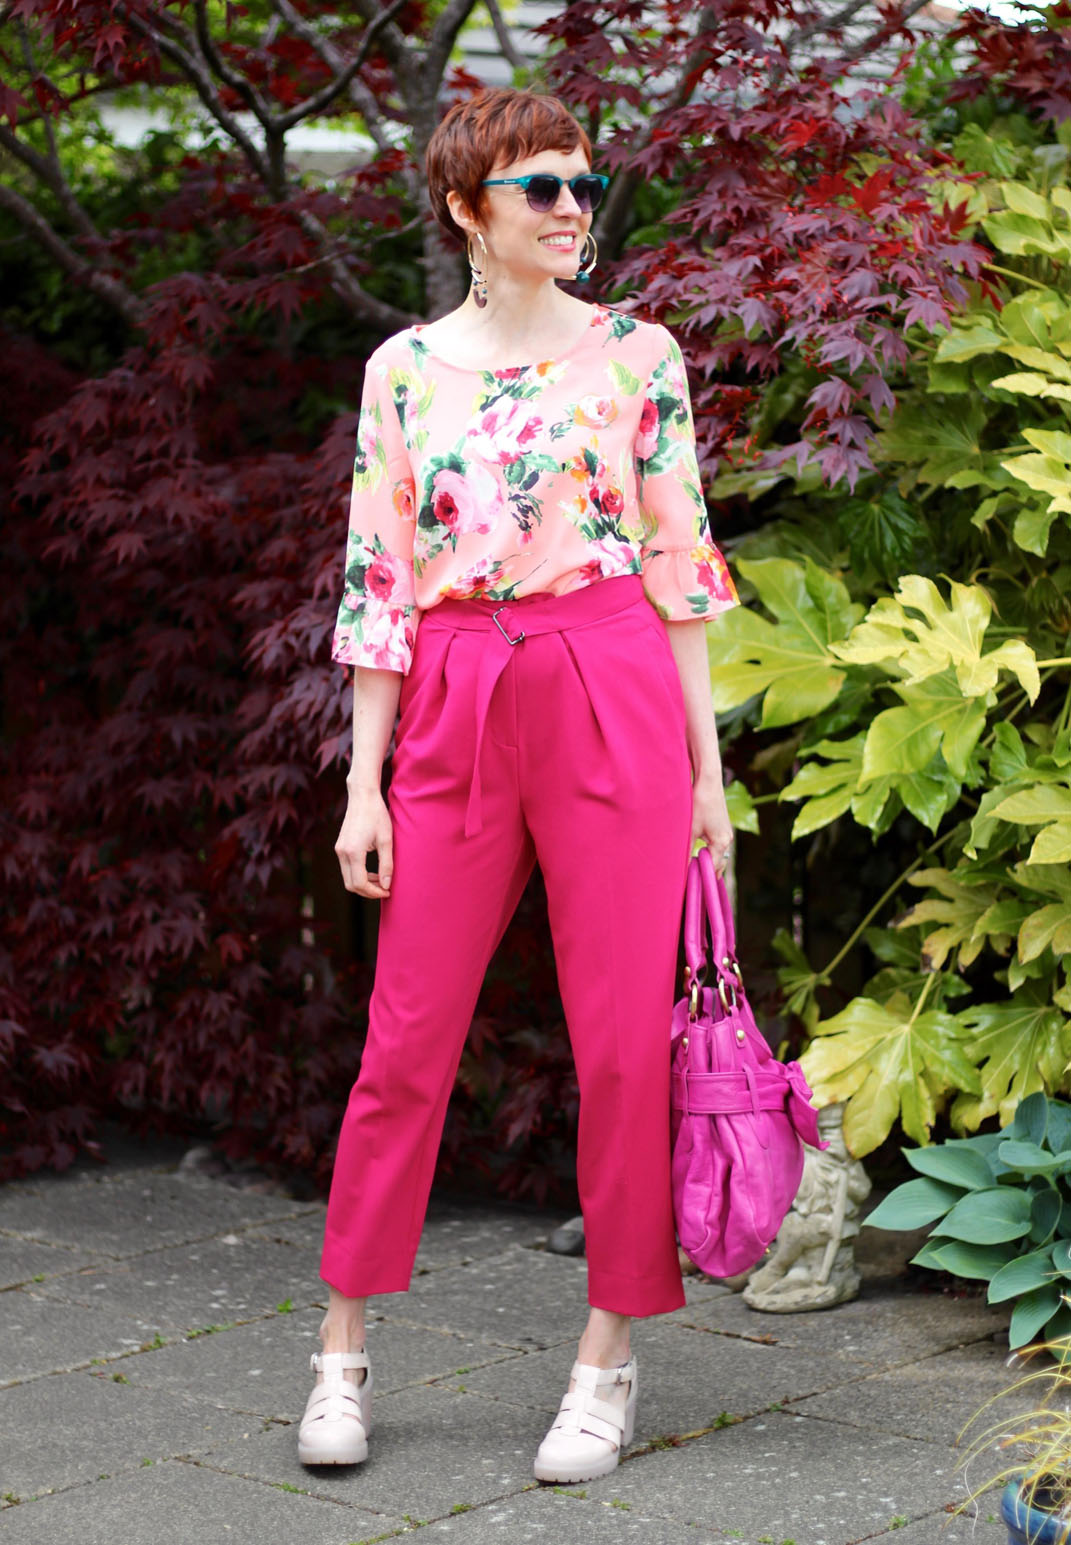 Over 40 fashion blogger Samantha of Fake Fabulous in pink florals